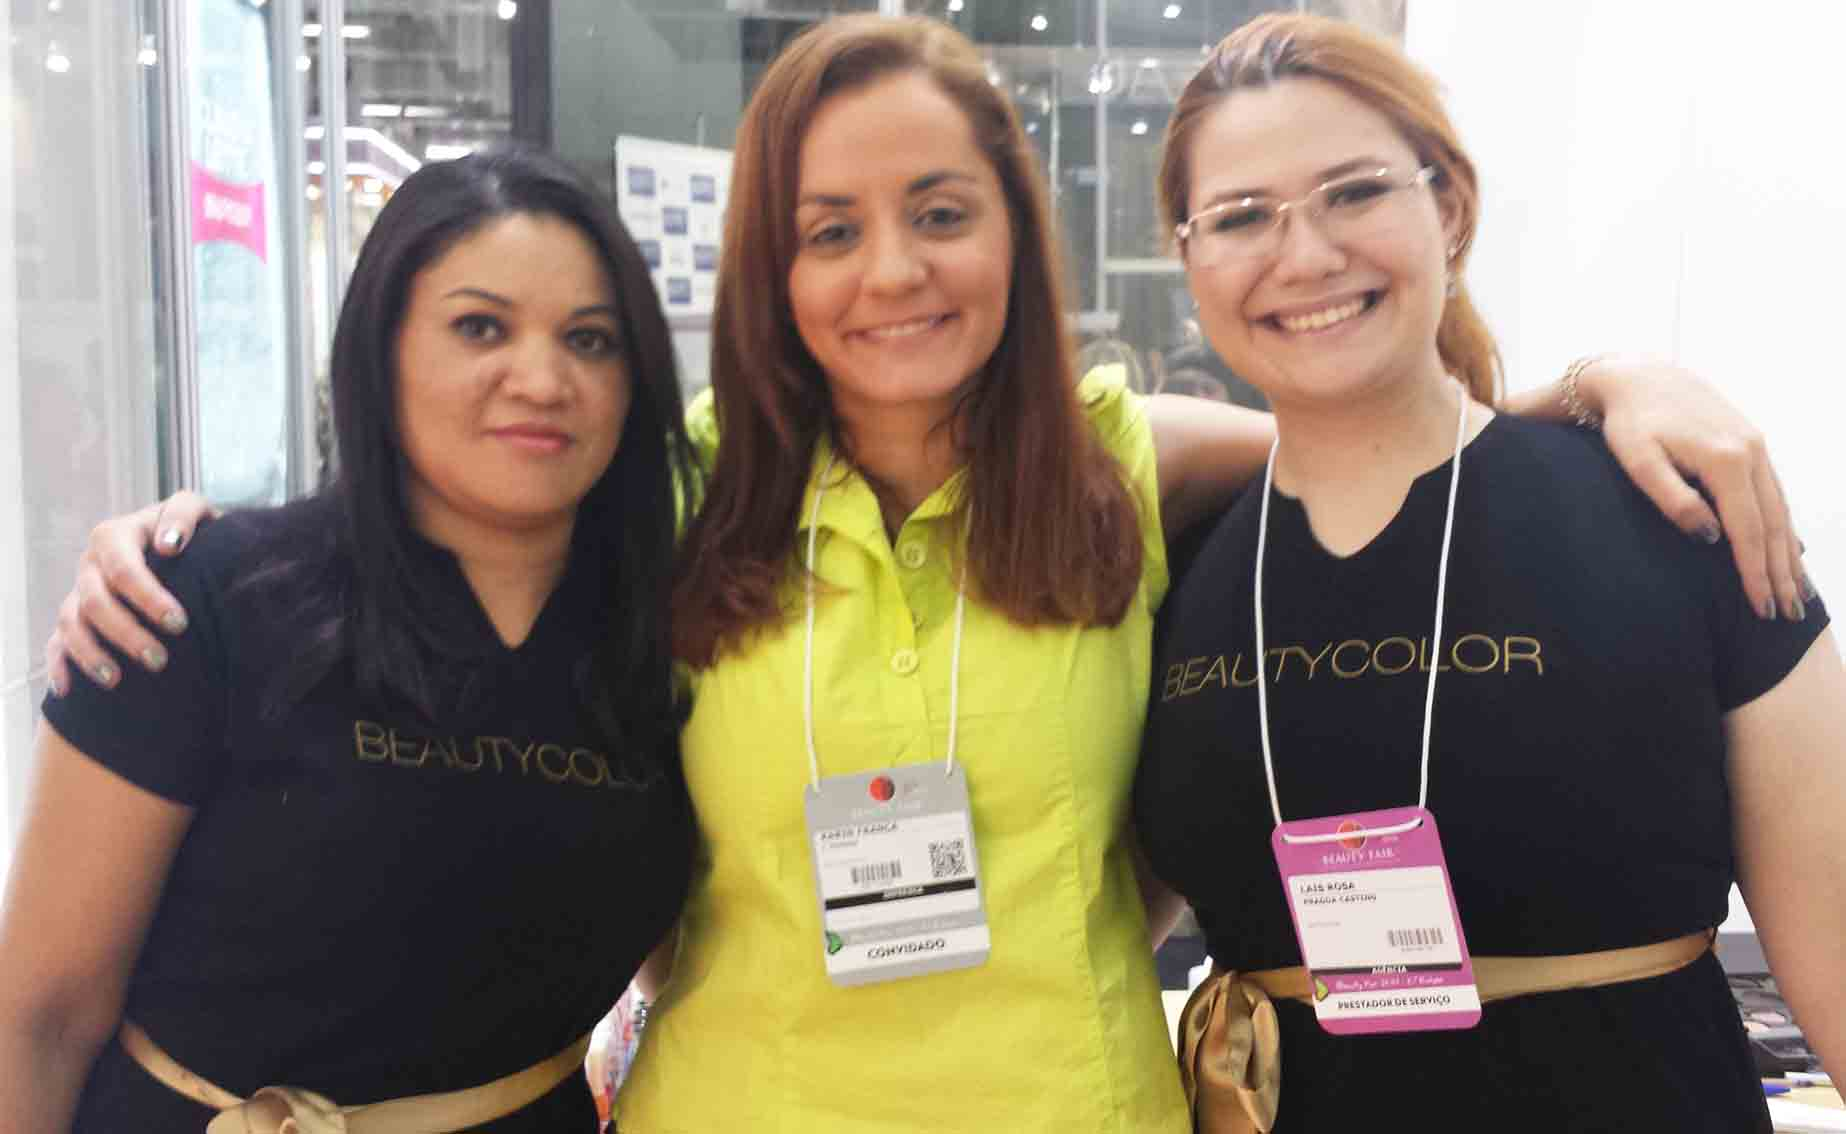 beauty color beauty fair 2014